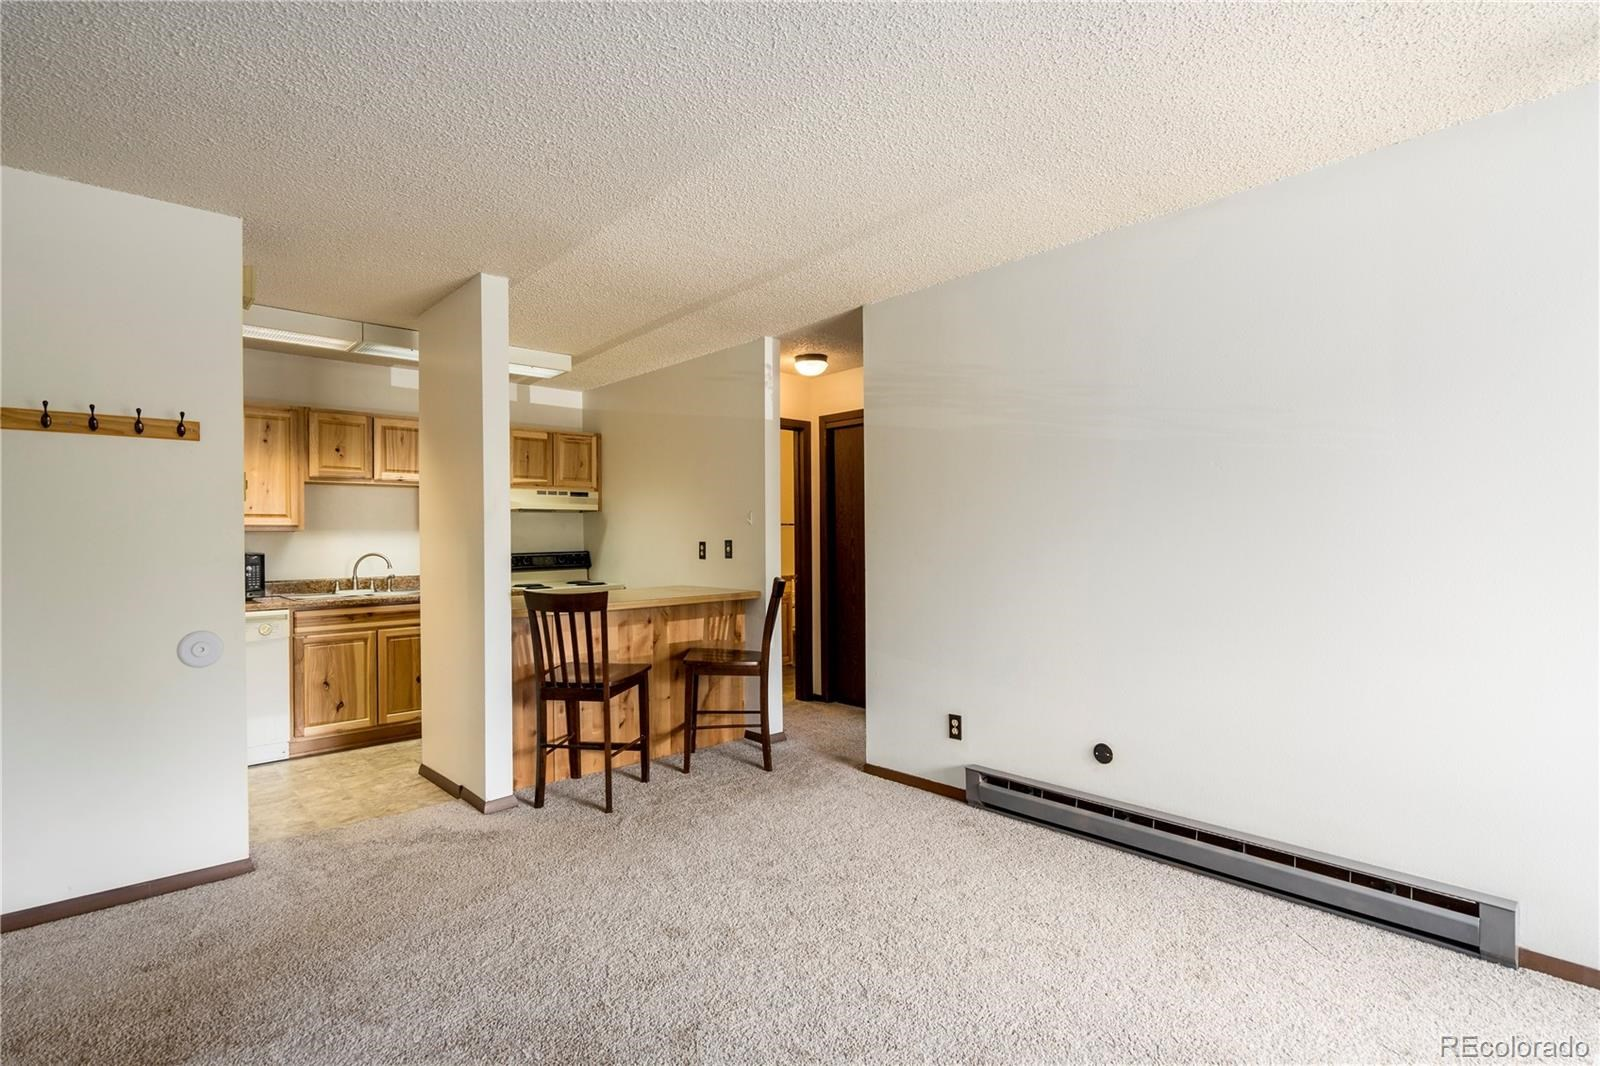 MLS# 5203269 - 1 - 1320 Athens Plaza #4, Steamboat Springs, CO 80487